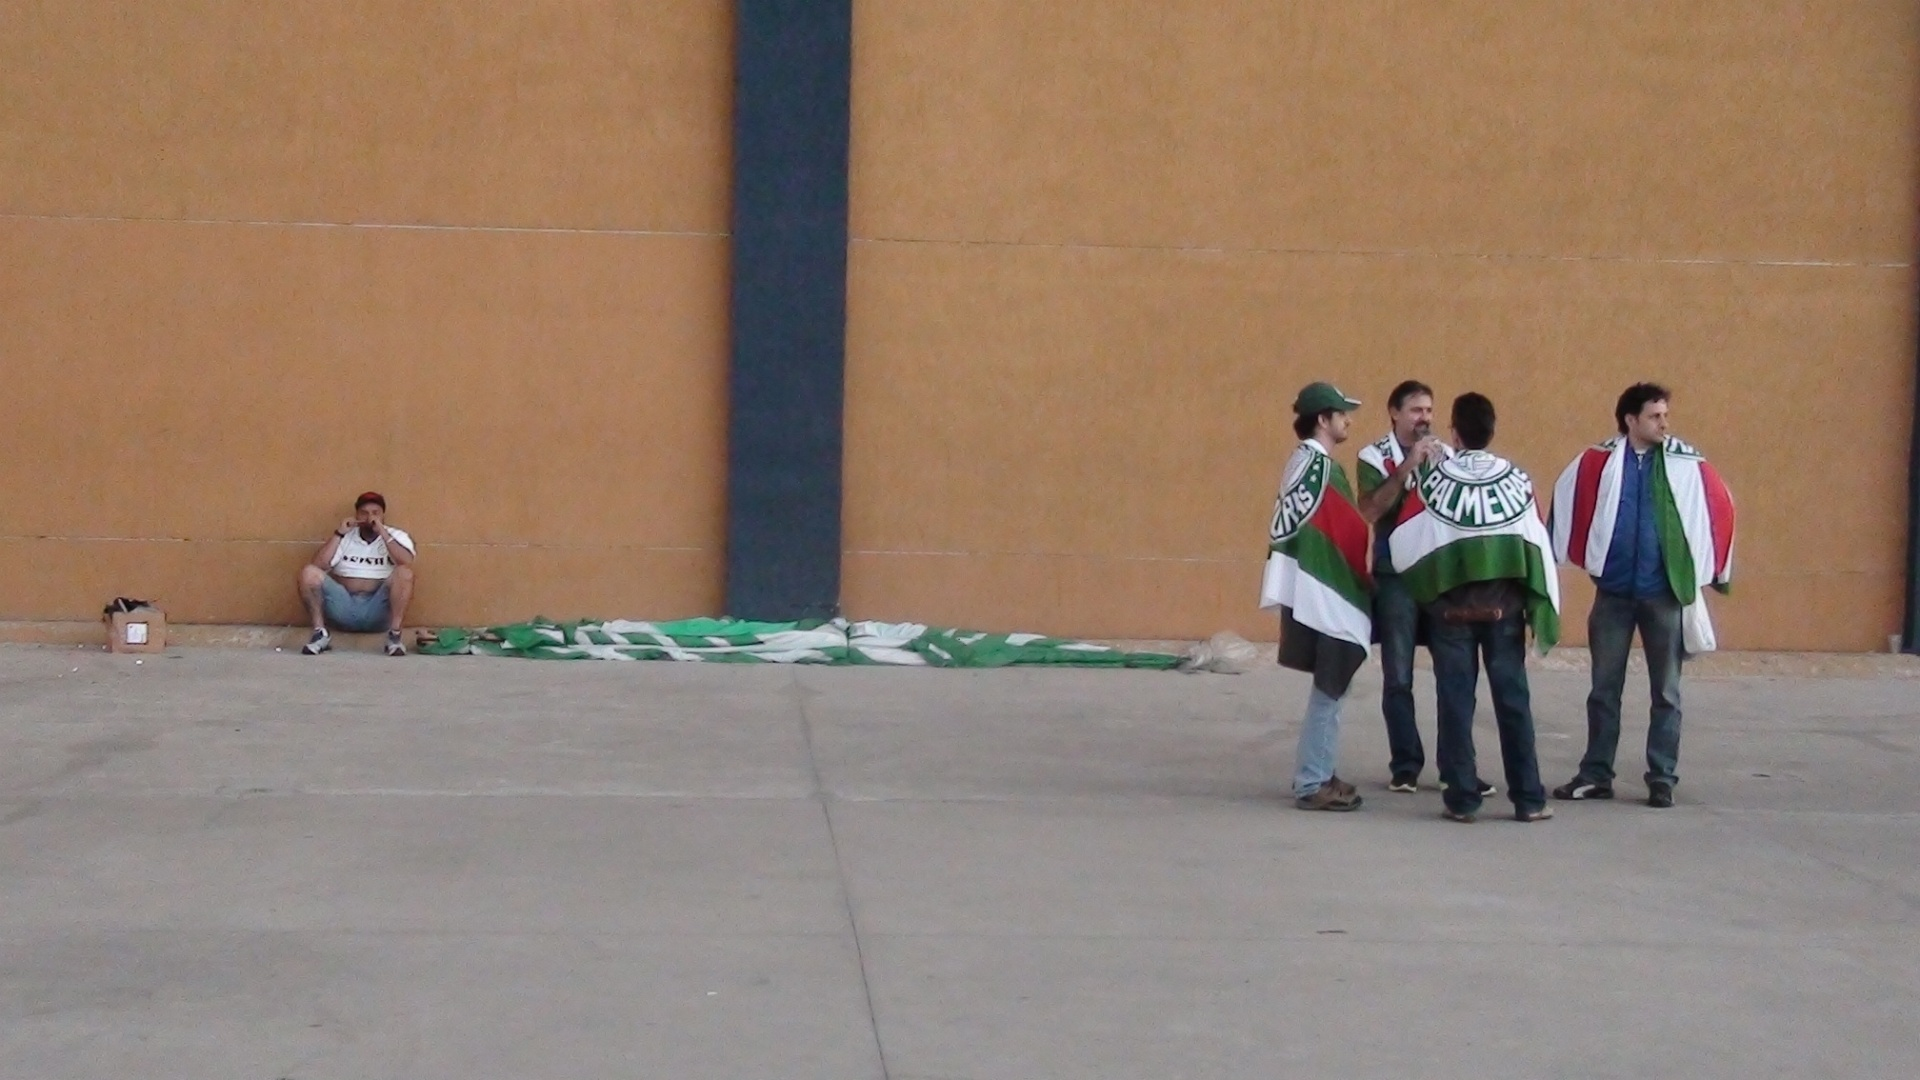 Torcedores do Palmeiras circulam pelos arredores da Arena Barueri